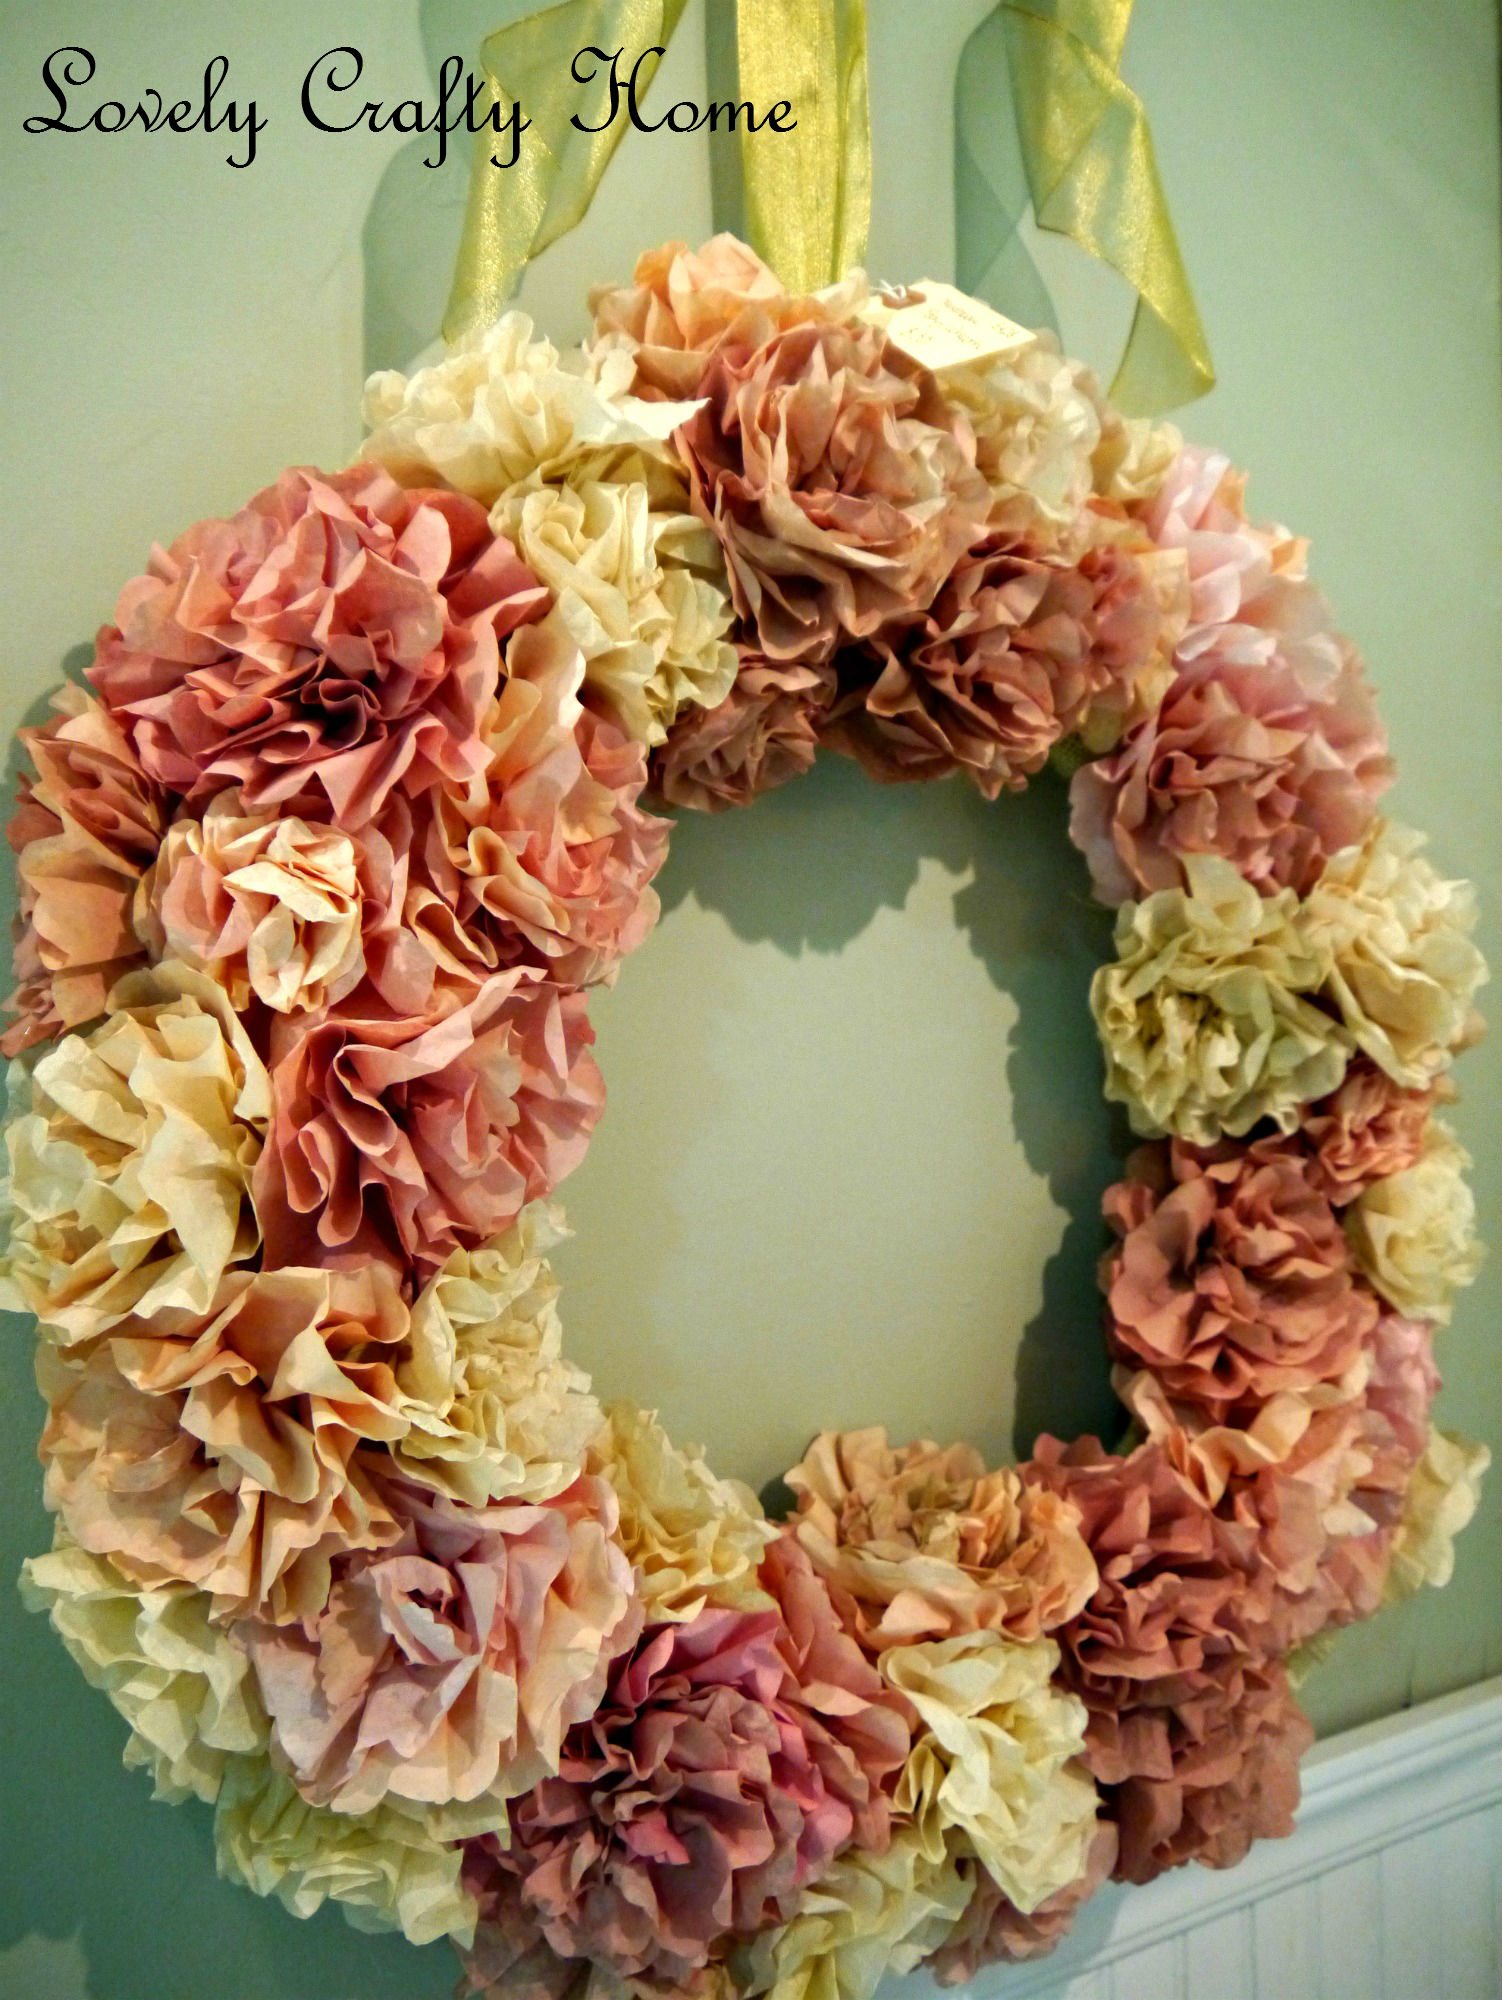 The Coffee Filter Wreath